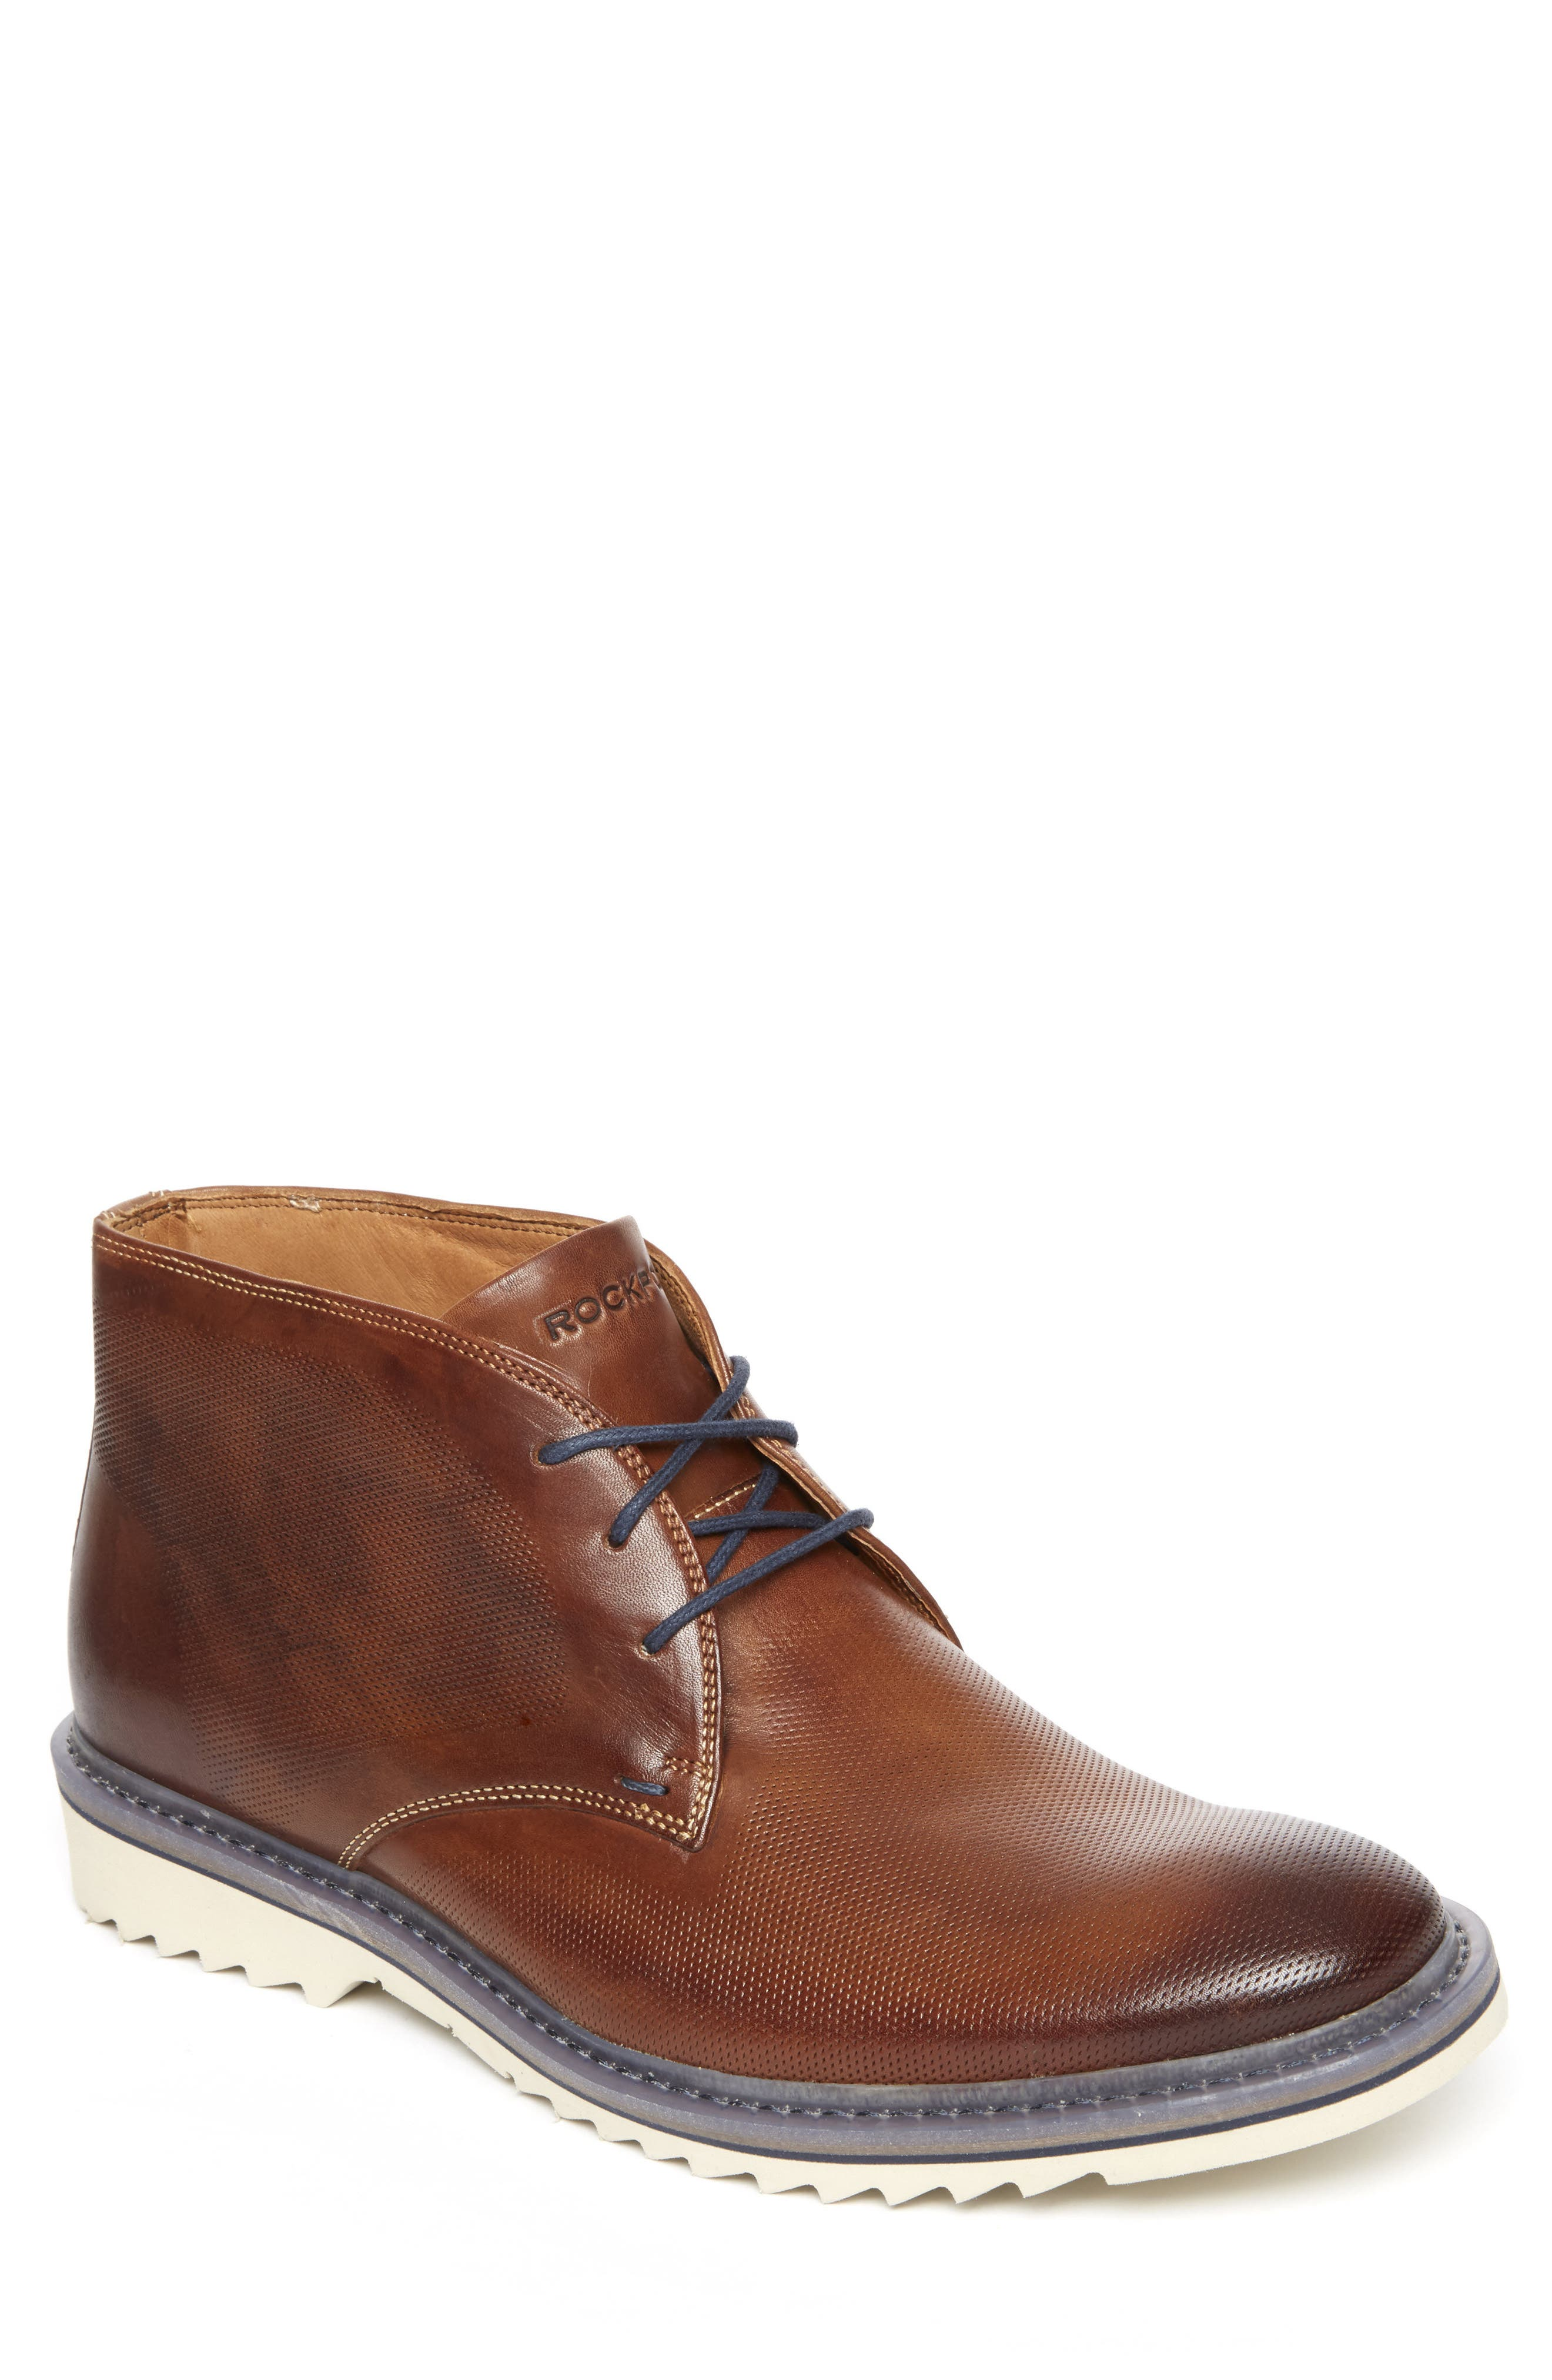 Jaxson Chukka Boot,                             Alternate thumbnail 2, color,                             200